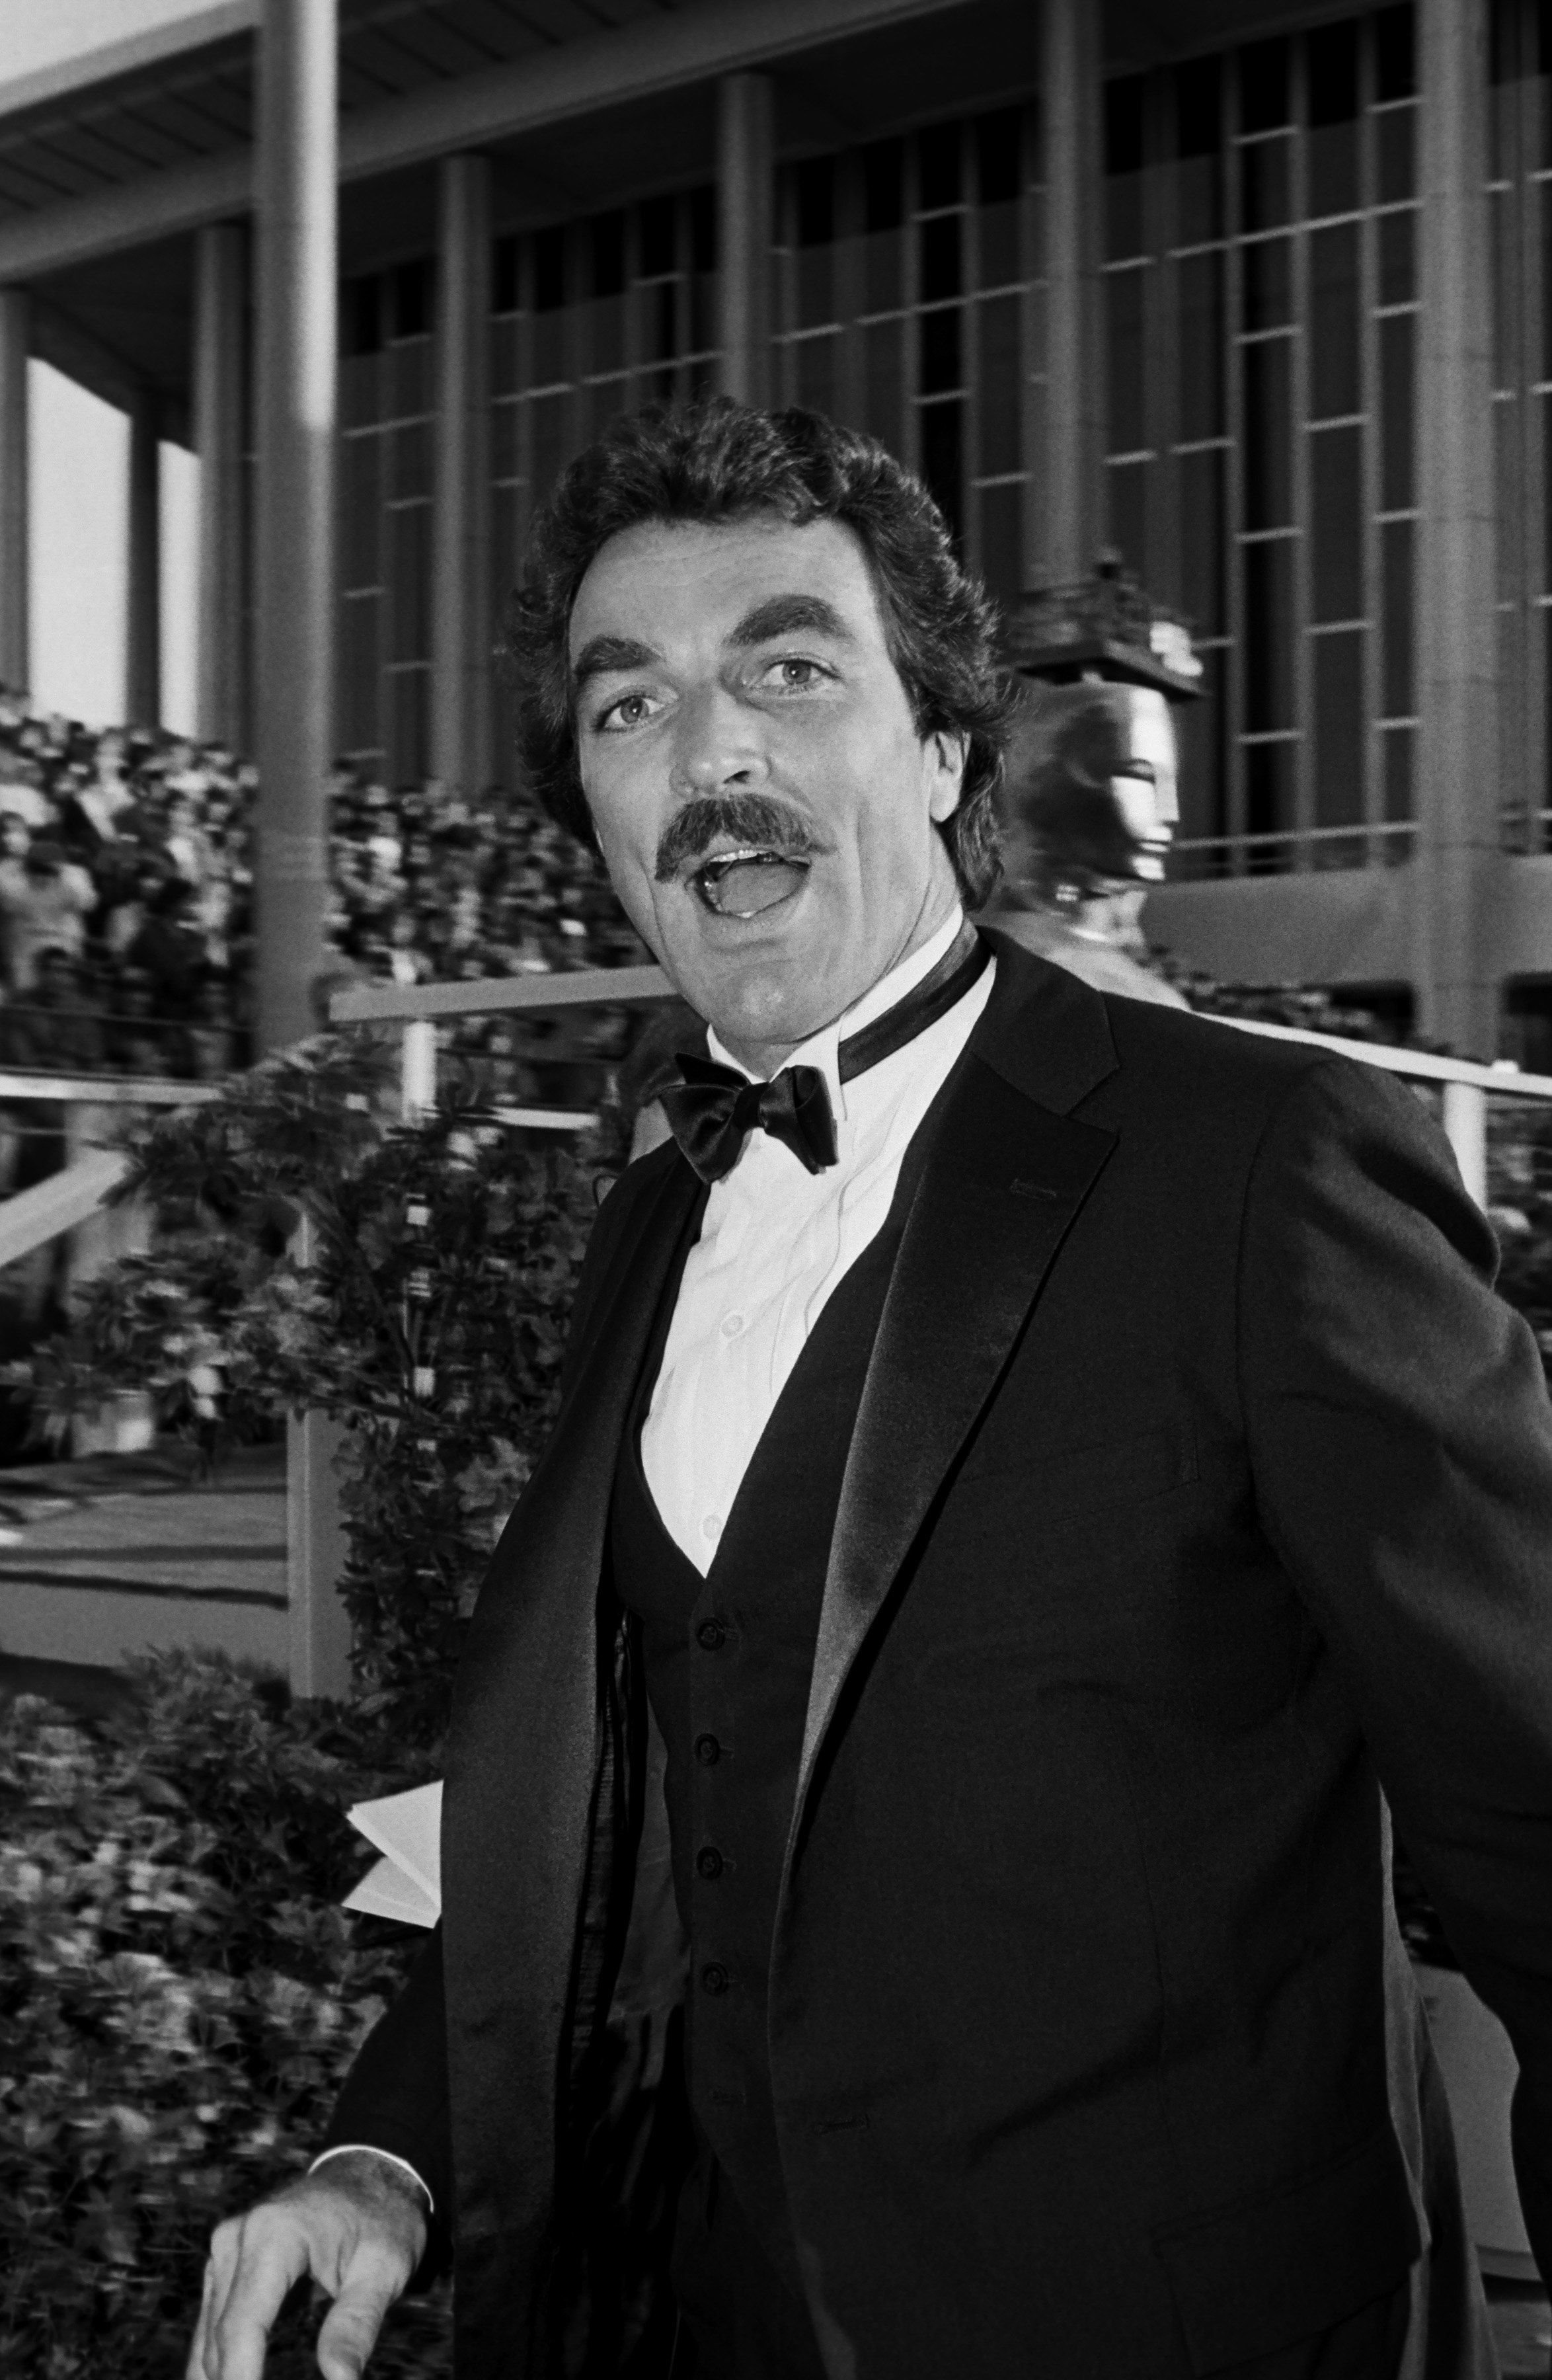 Emmy Award-winning actor, Tom Selleck,on the red carpet during the 1983 Academy Awards | Source: Getty Images